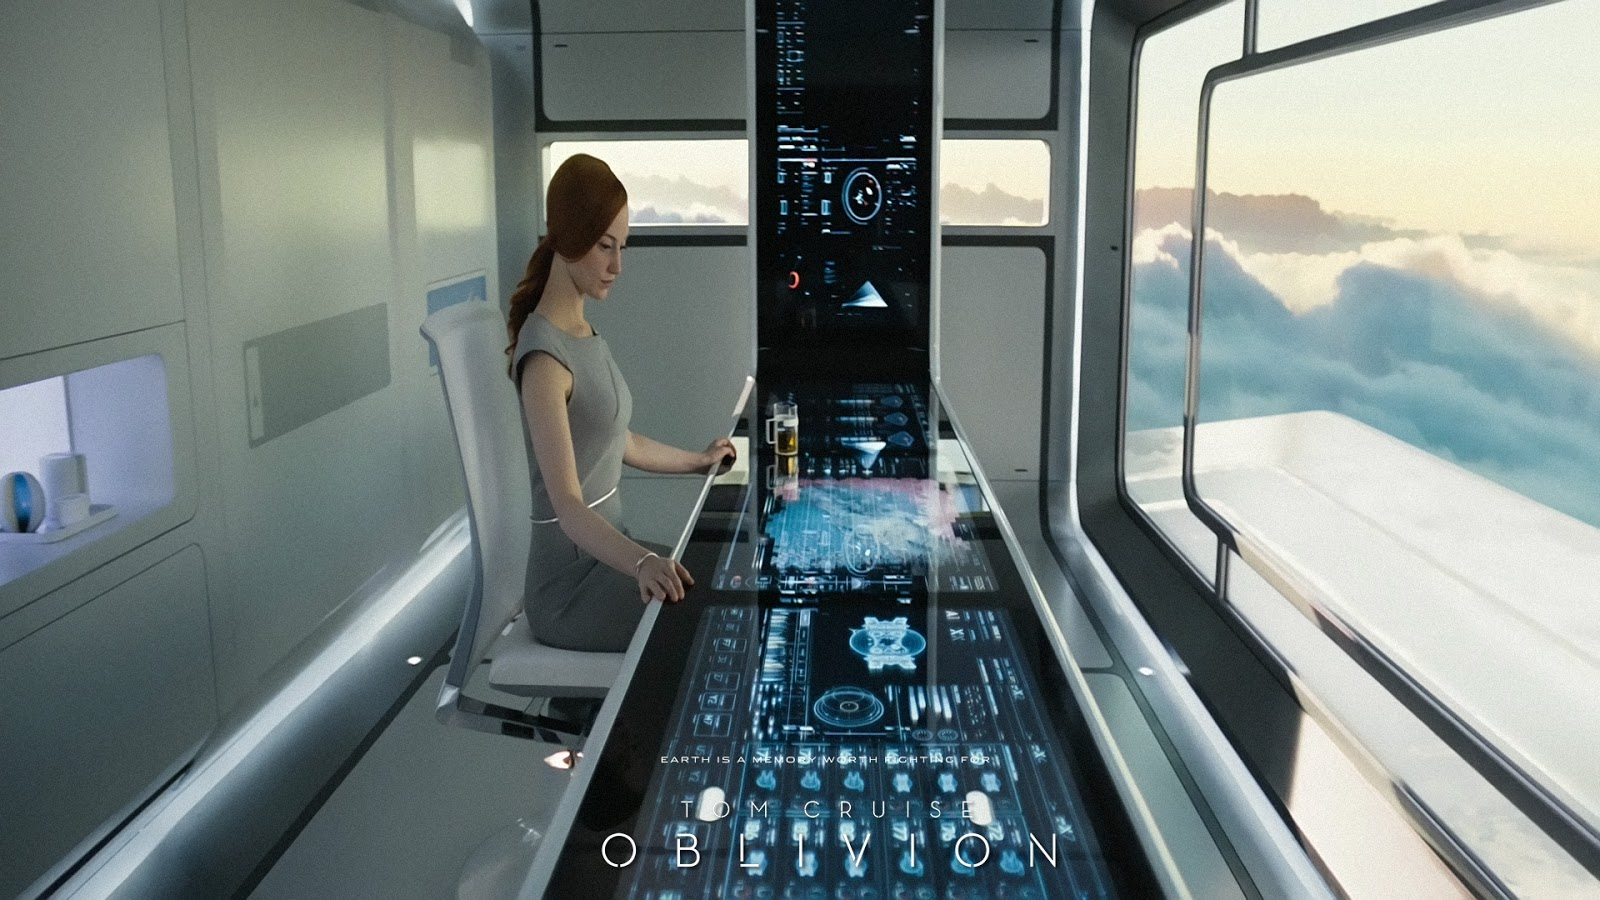 And it is that same passion that is the reason to see Oblivion. Some of the nods are obvious, some less so, but the film is ...